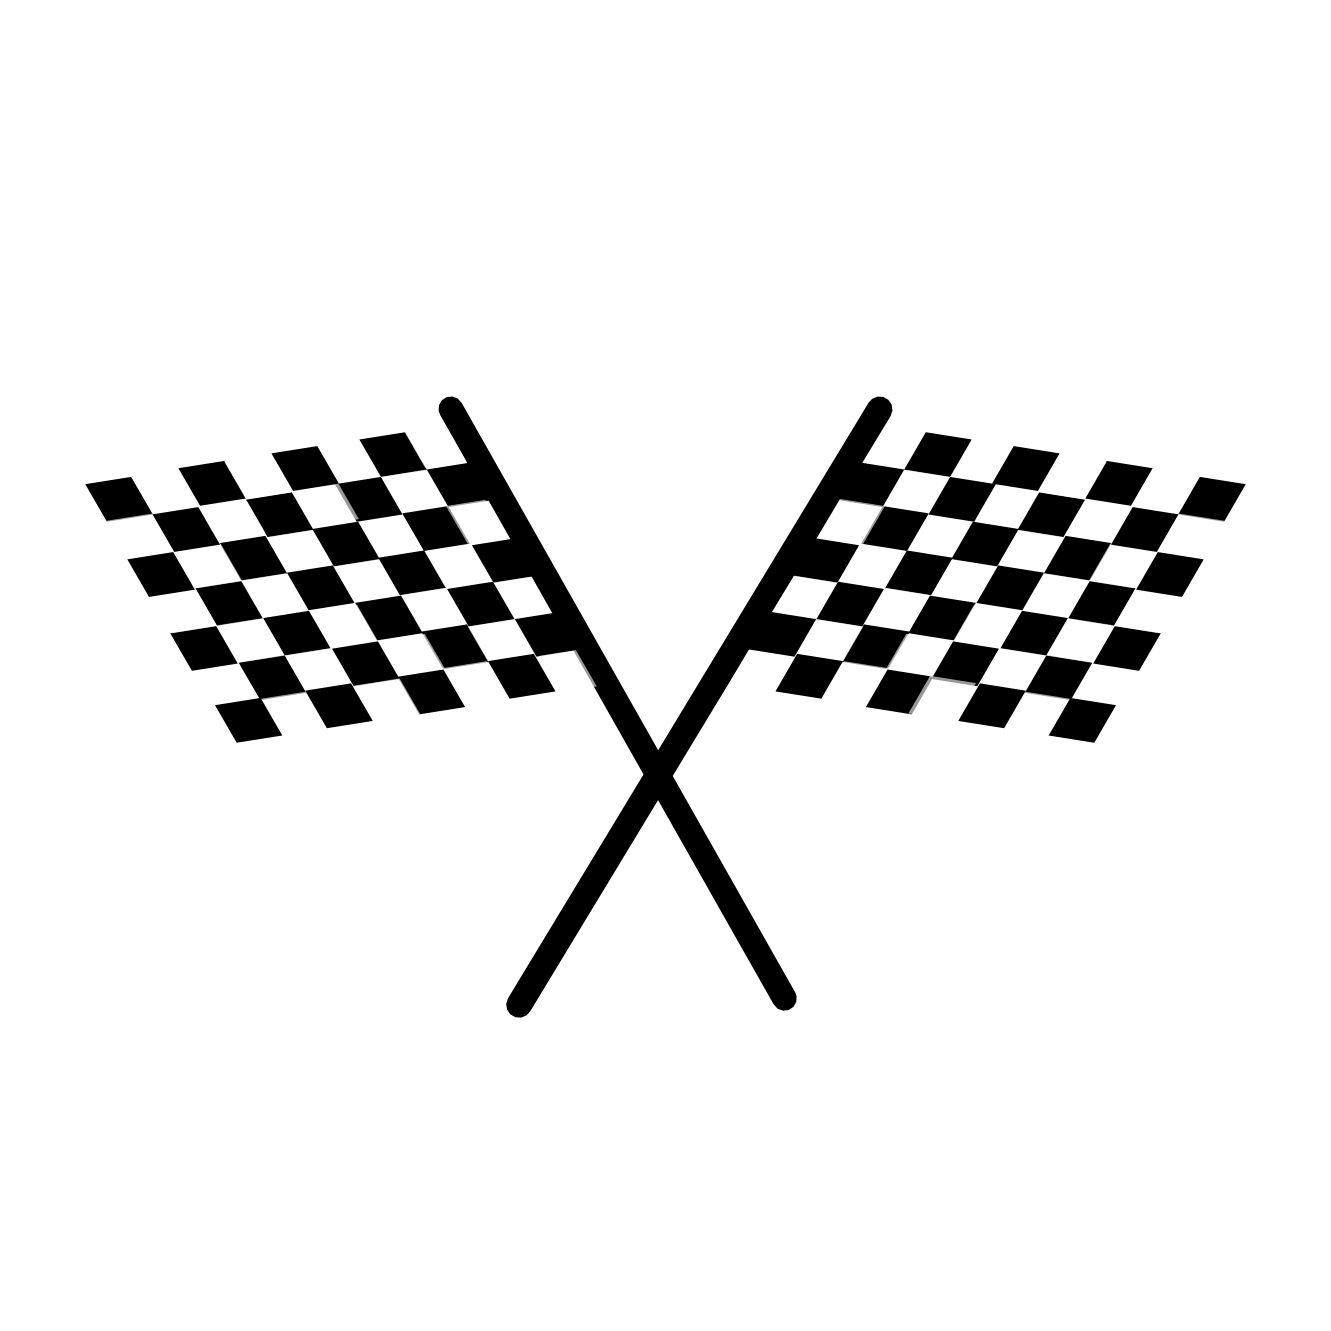 Wavy Checkered Flag